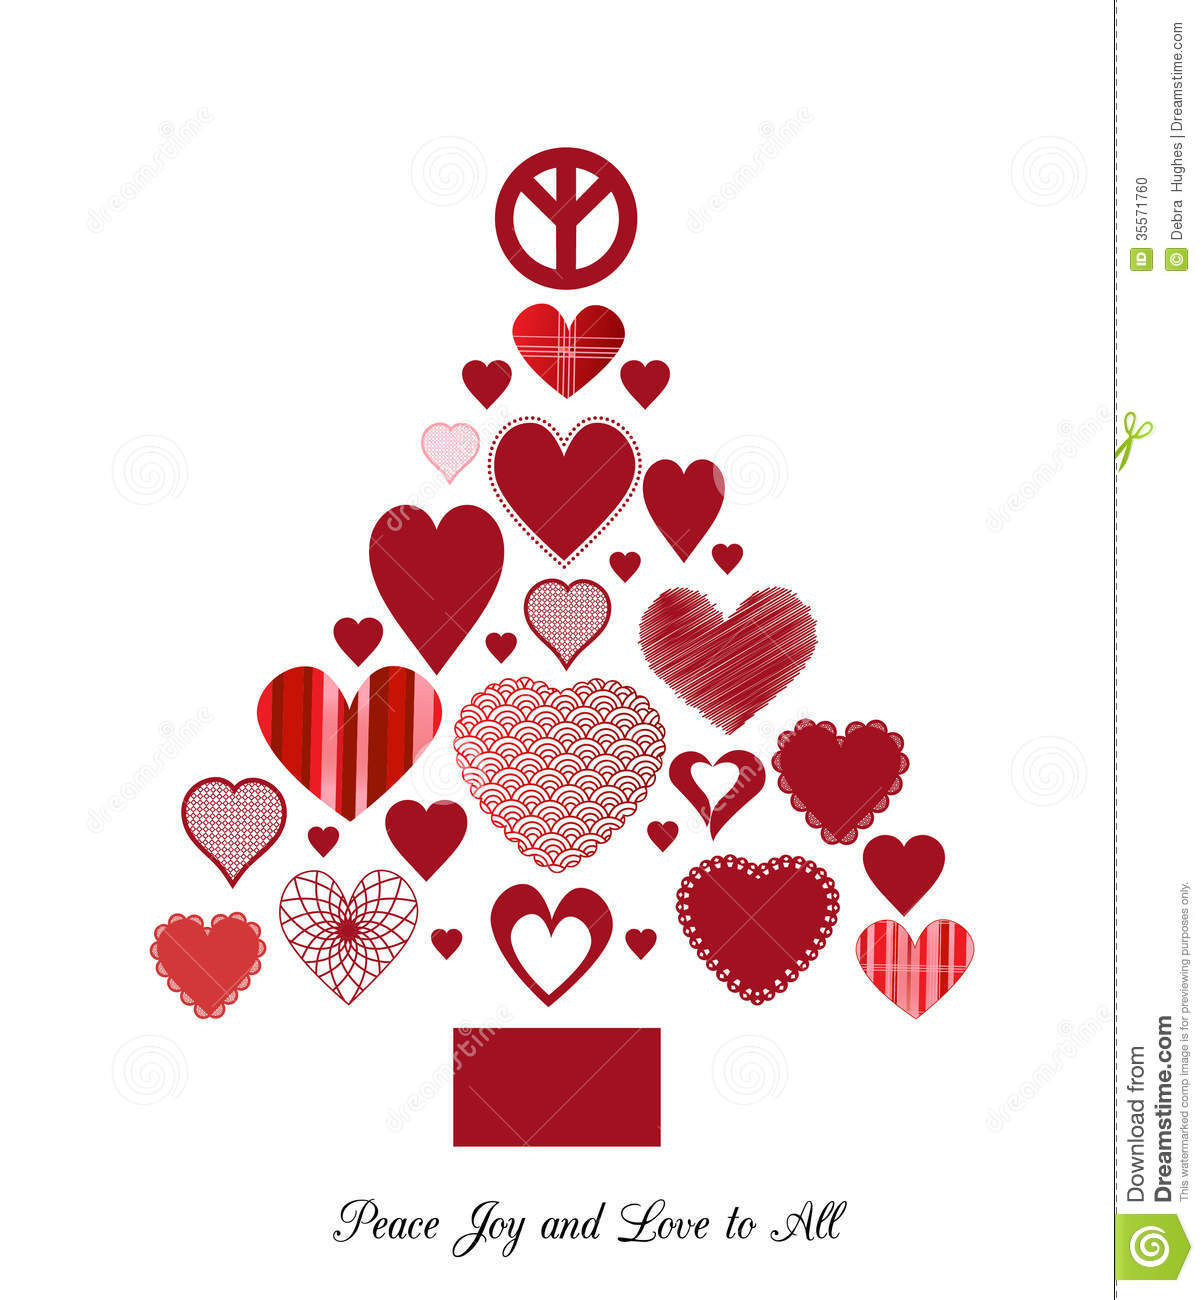 Love and peace christmas tree stock vector illustration